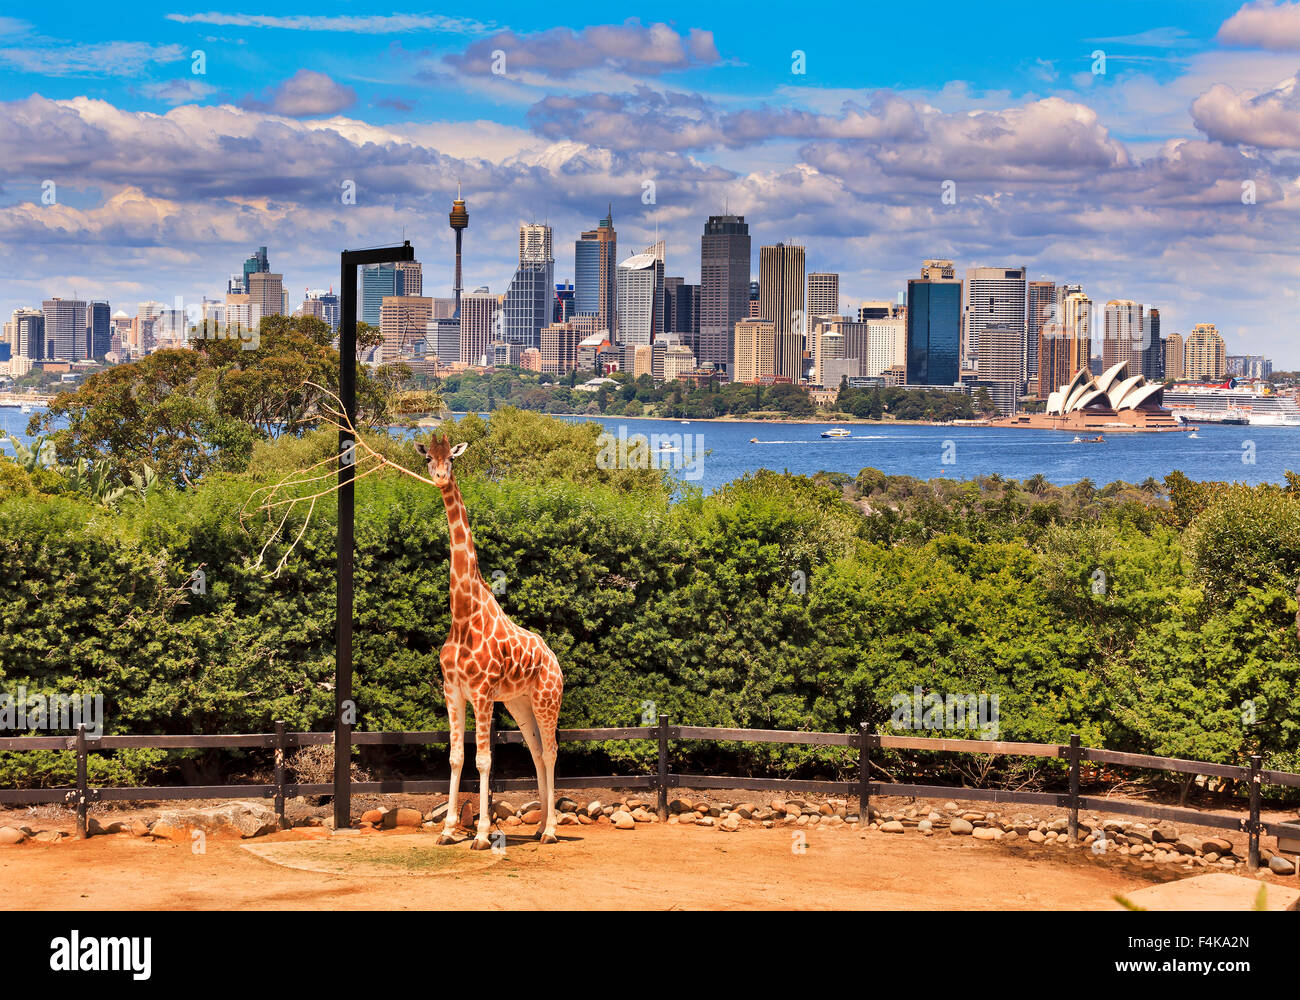 Australian cityscape of CBD across Harbour from green park with single giraffe in foreground Stock Photo